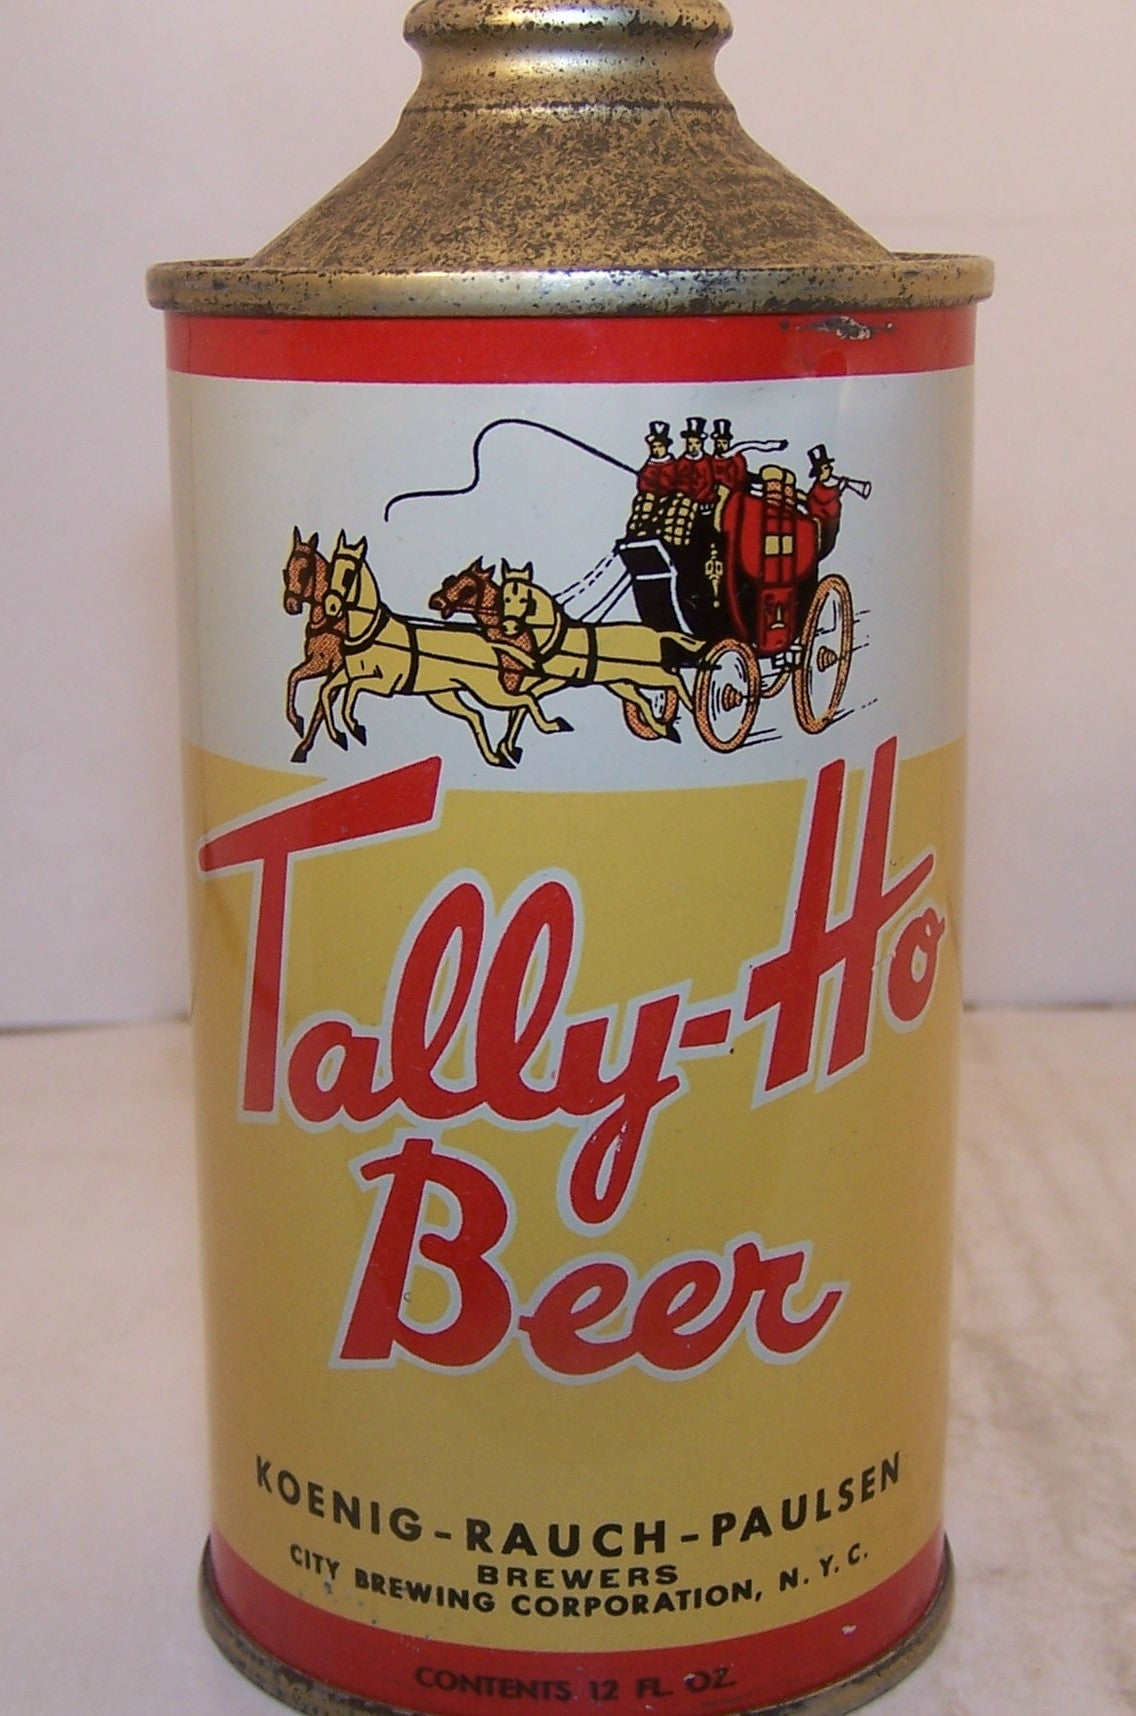 Tally-Ho Beer, USBC 186-23 Grade 1/1+ Sold 5/21/15